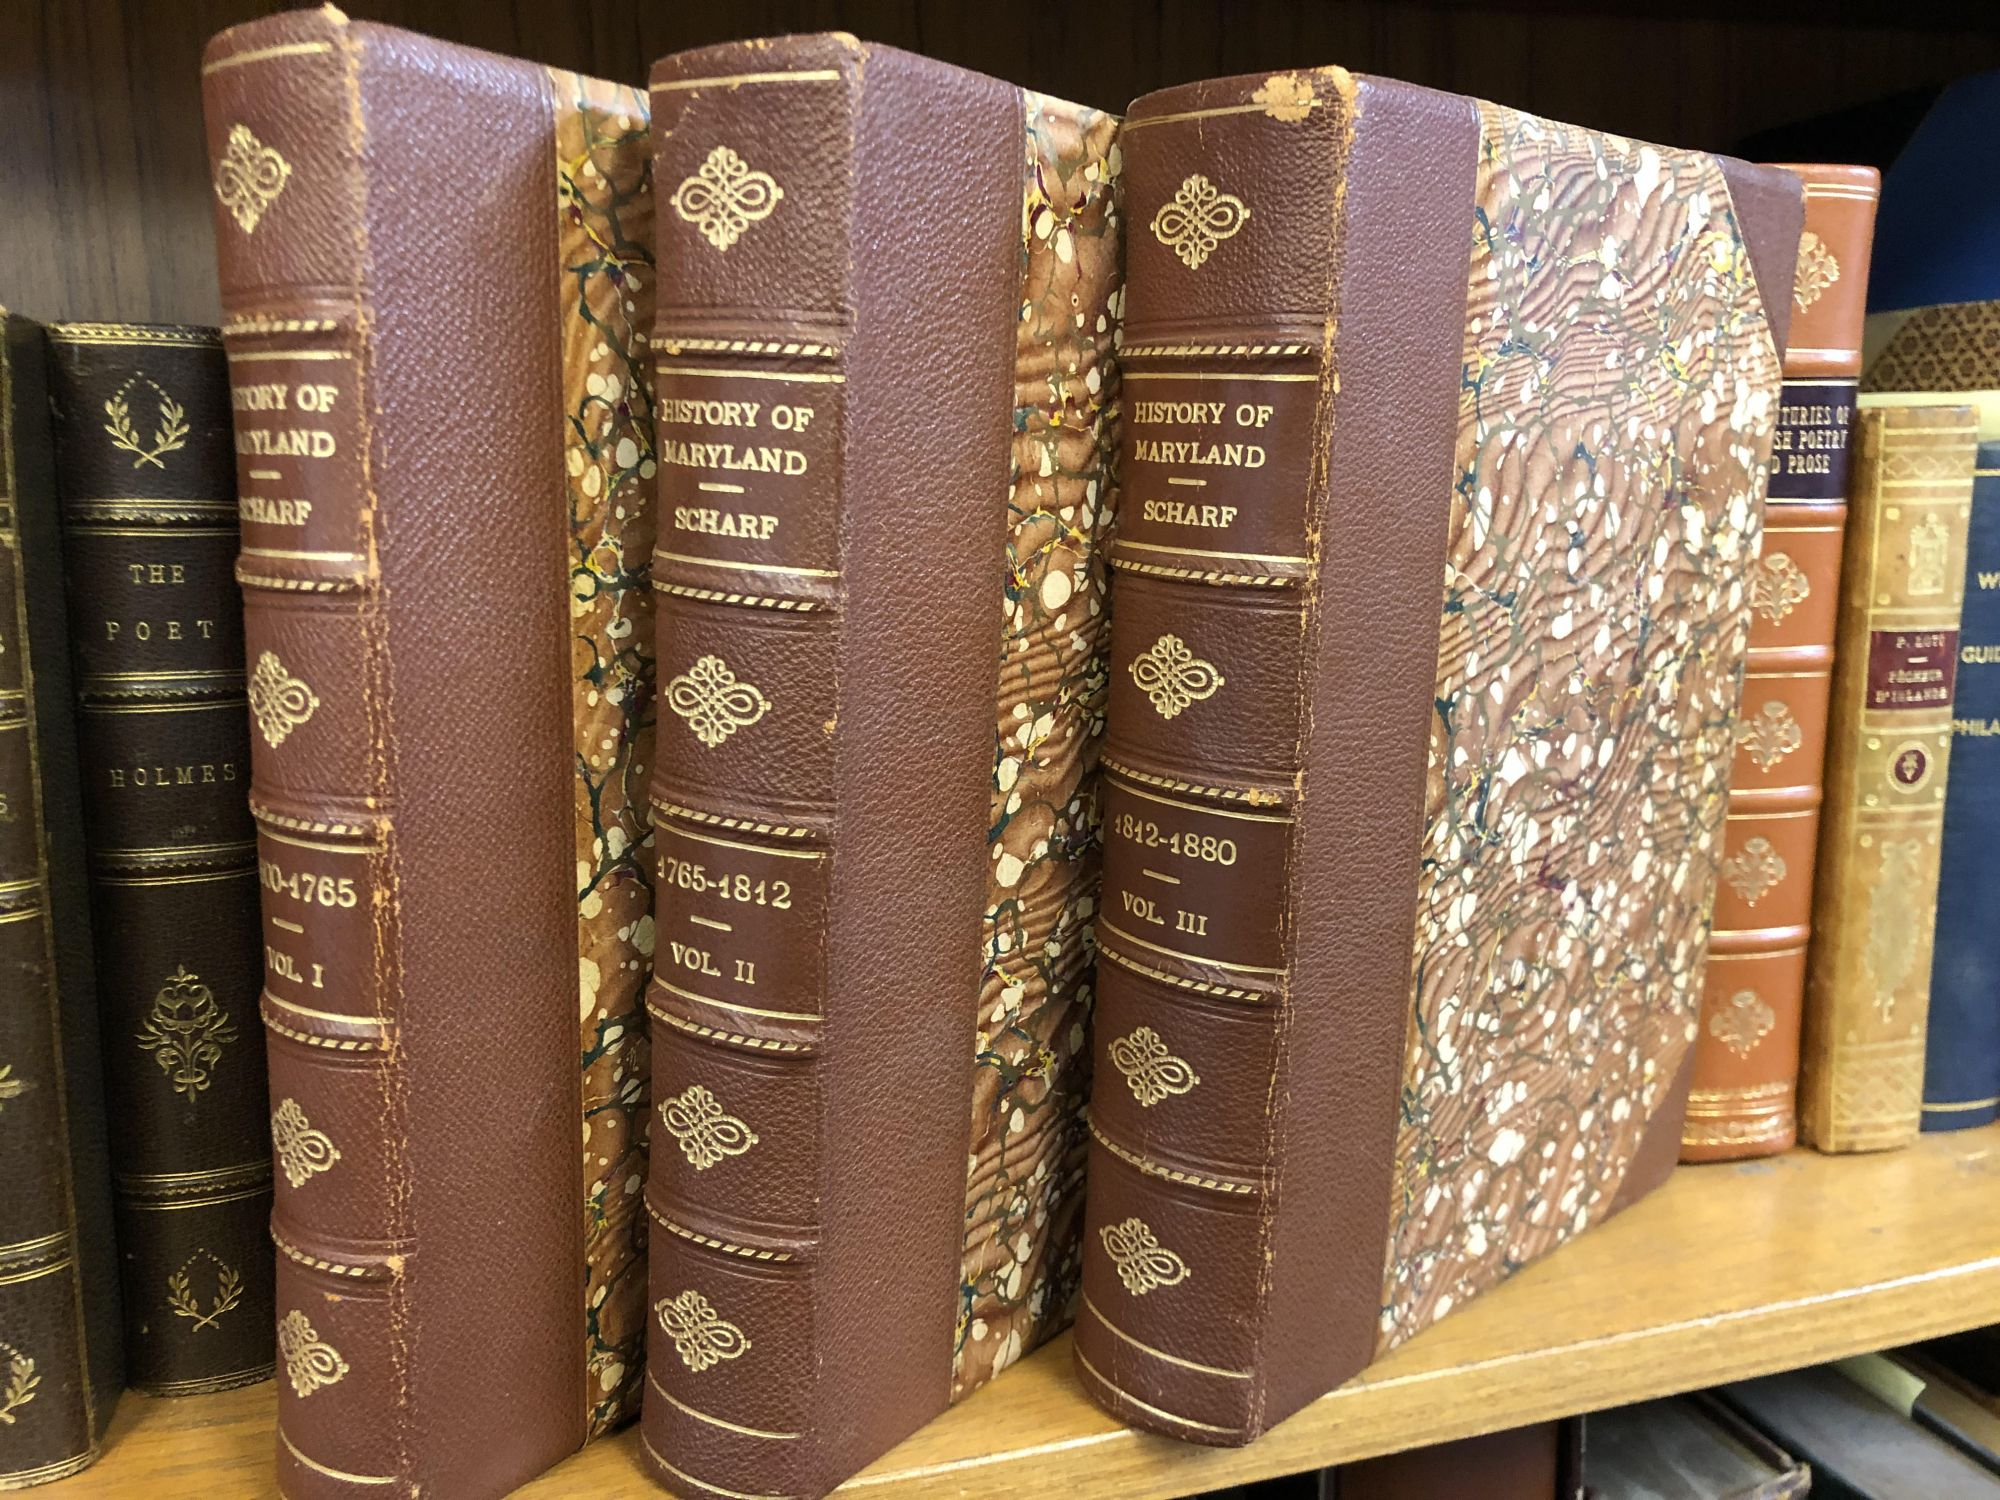 HISTORY OF MARYLAND FROM THE EARLIEST PERIOD TO THE PRESENT DAY [THREE VOLUMES]. J. Thomas Scharf.